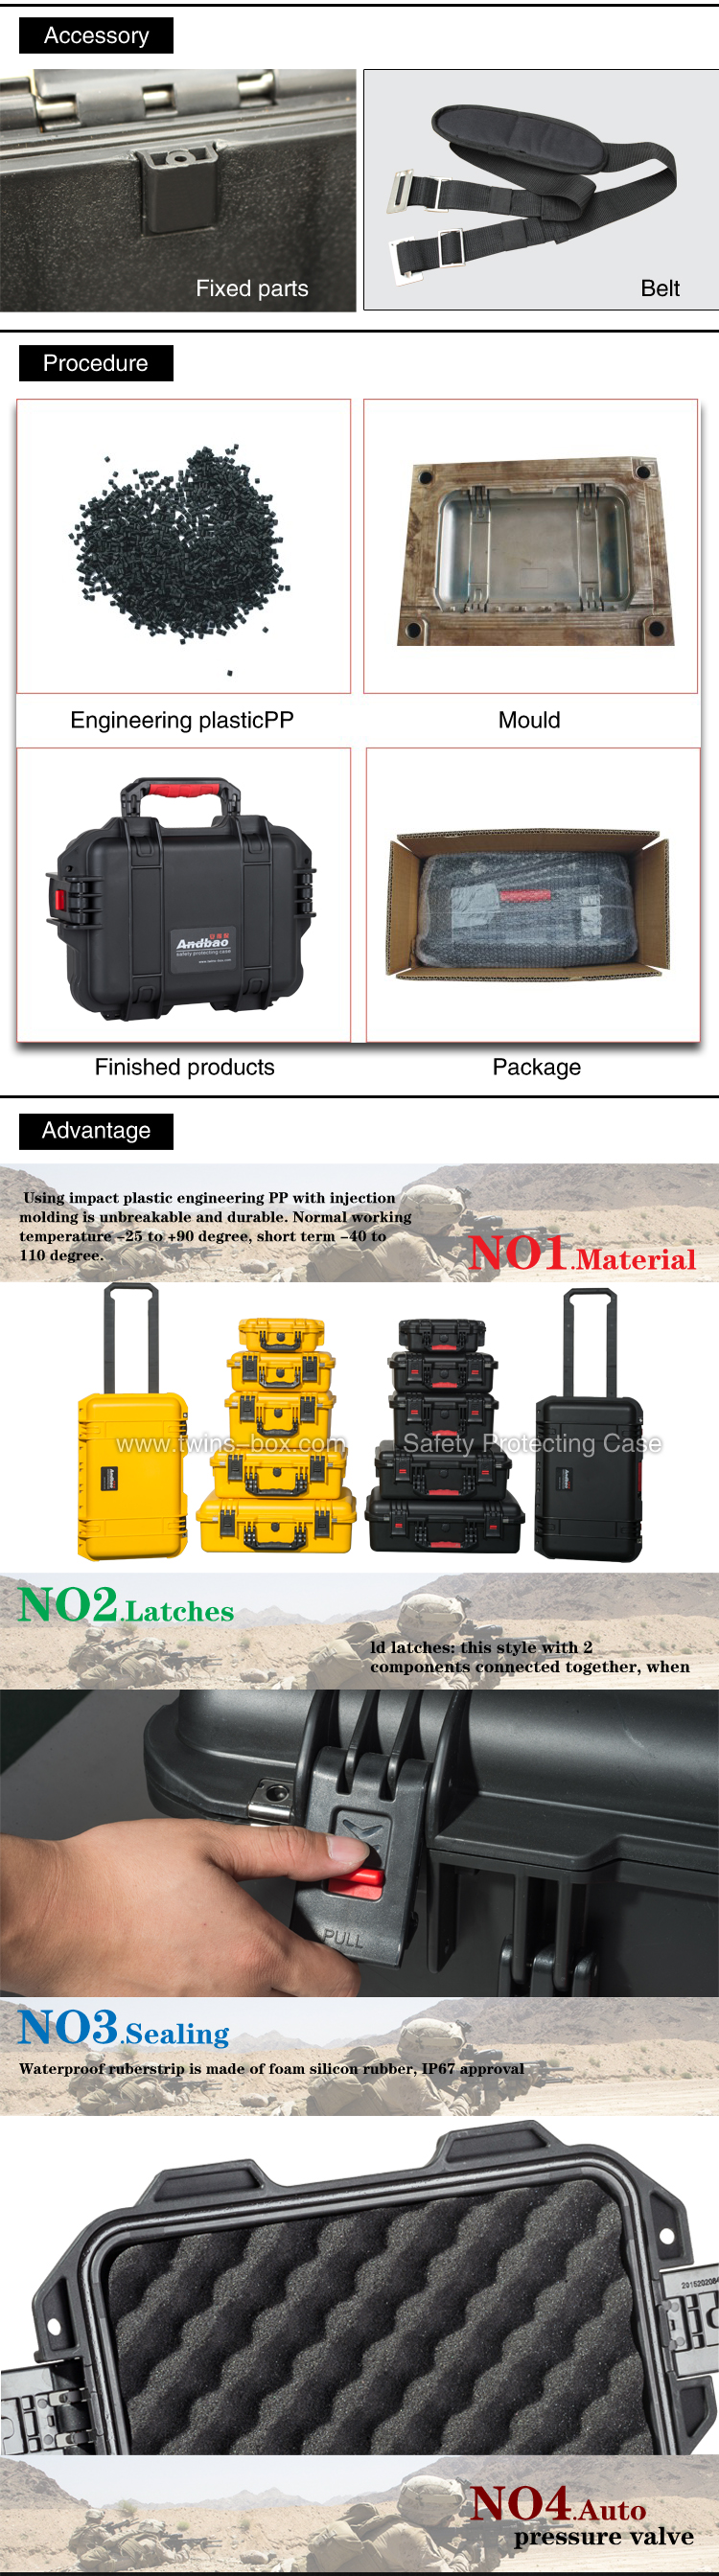 High-impact waterproof and shockproof gun case